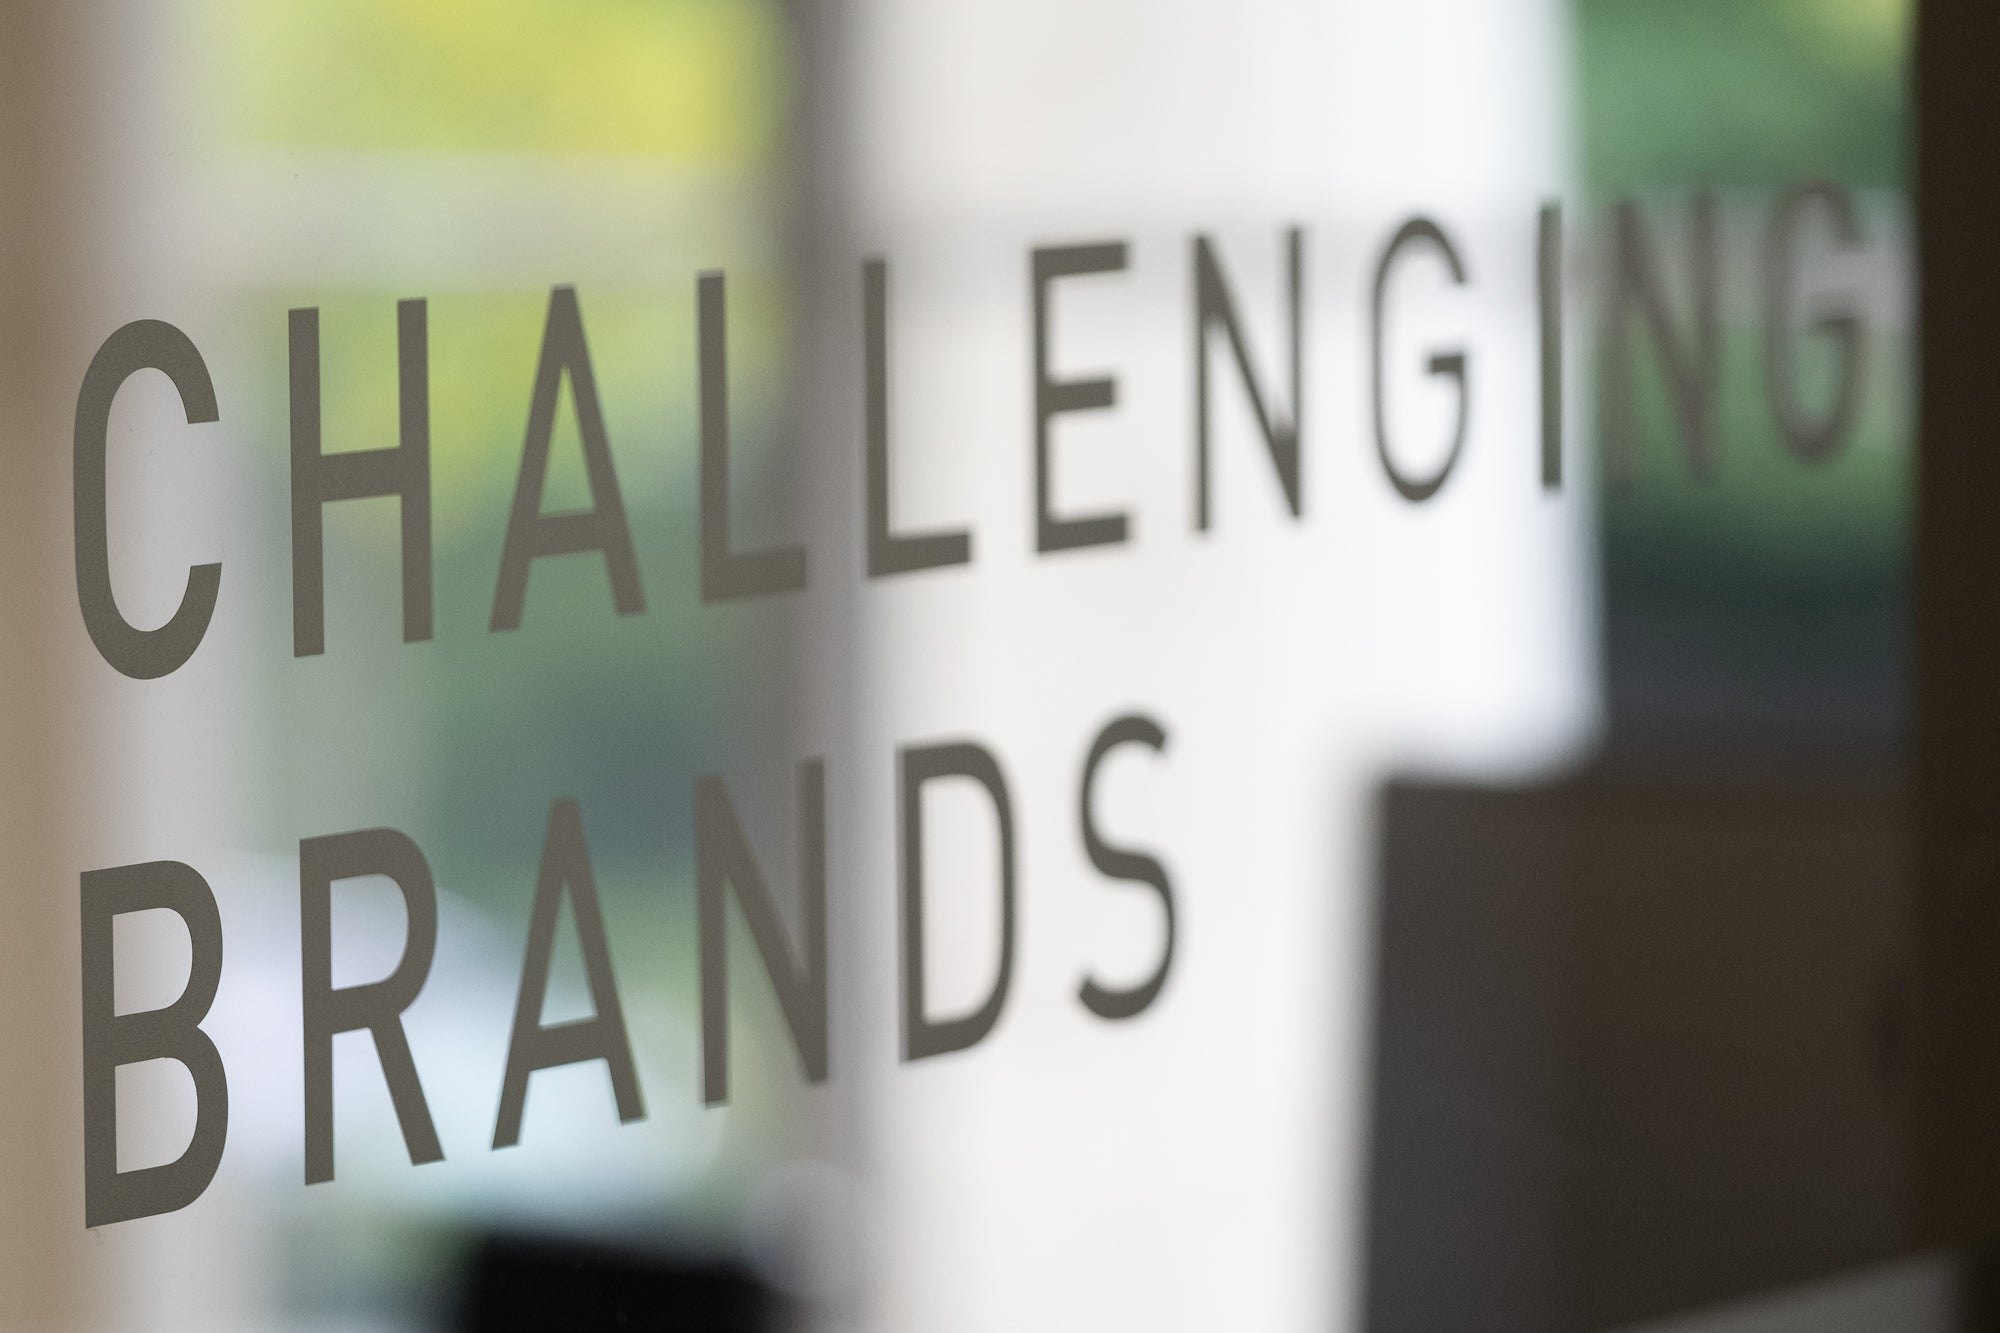 A sign saying challenging brands etched onto a window in an office window at chalk and ward